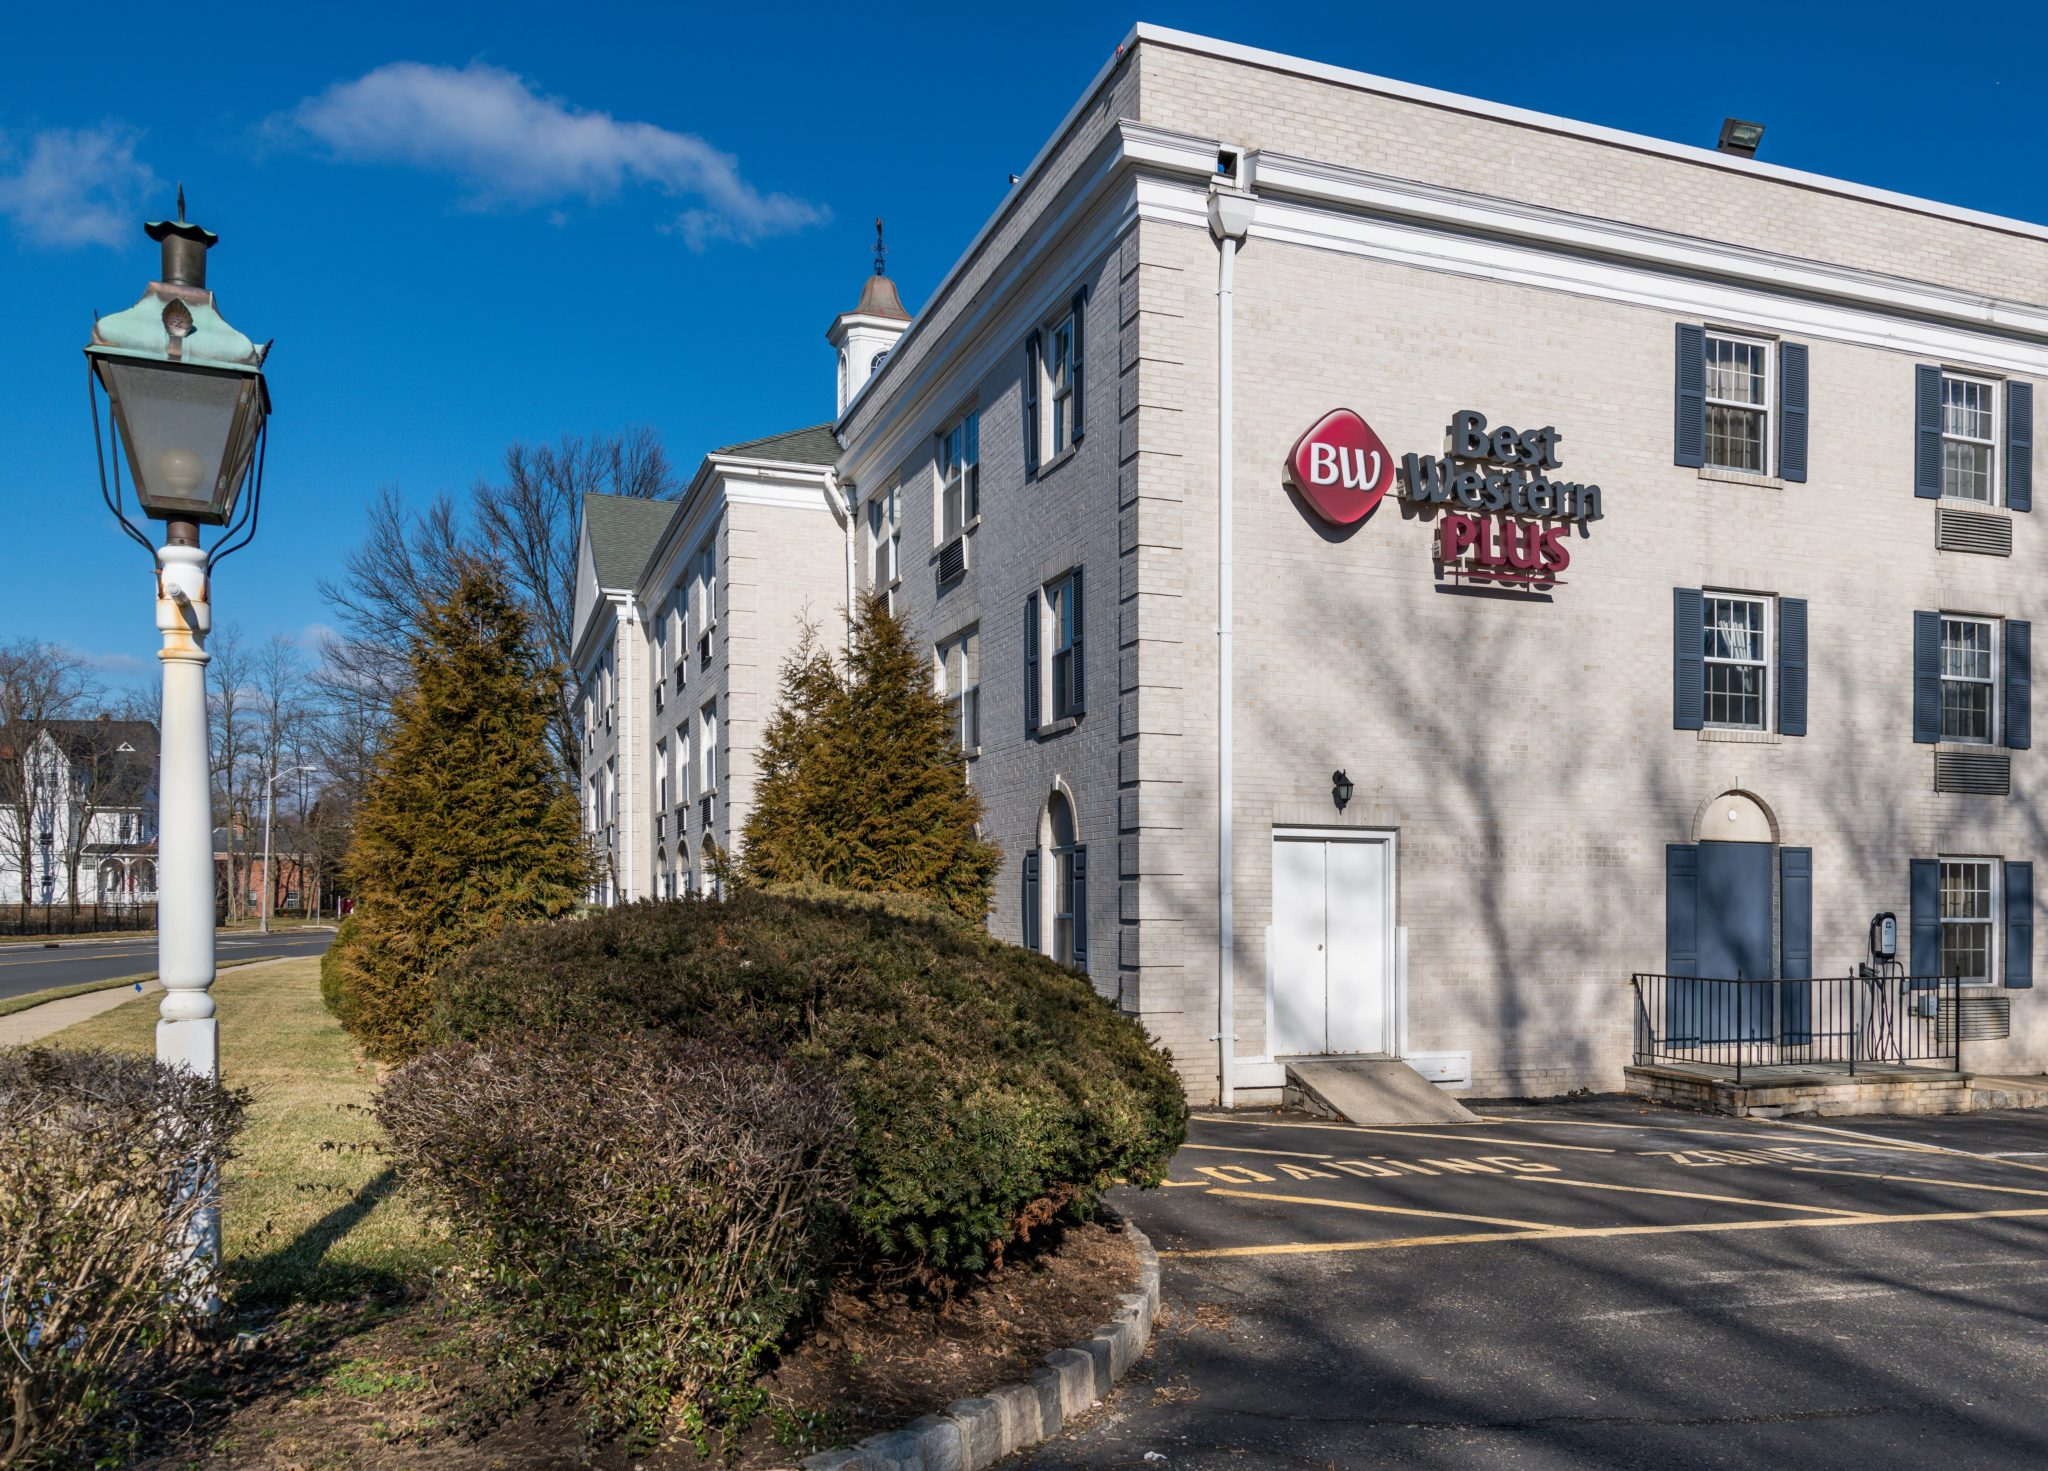 Front exterior view of Best Western hotel in Morristown